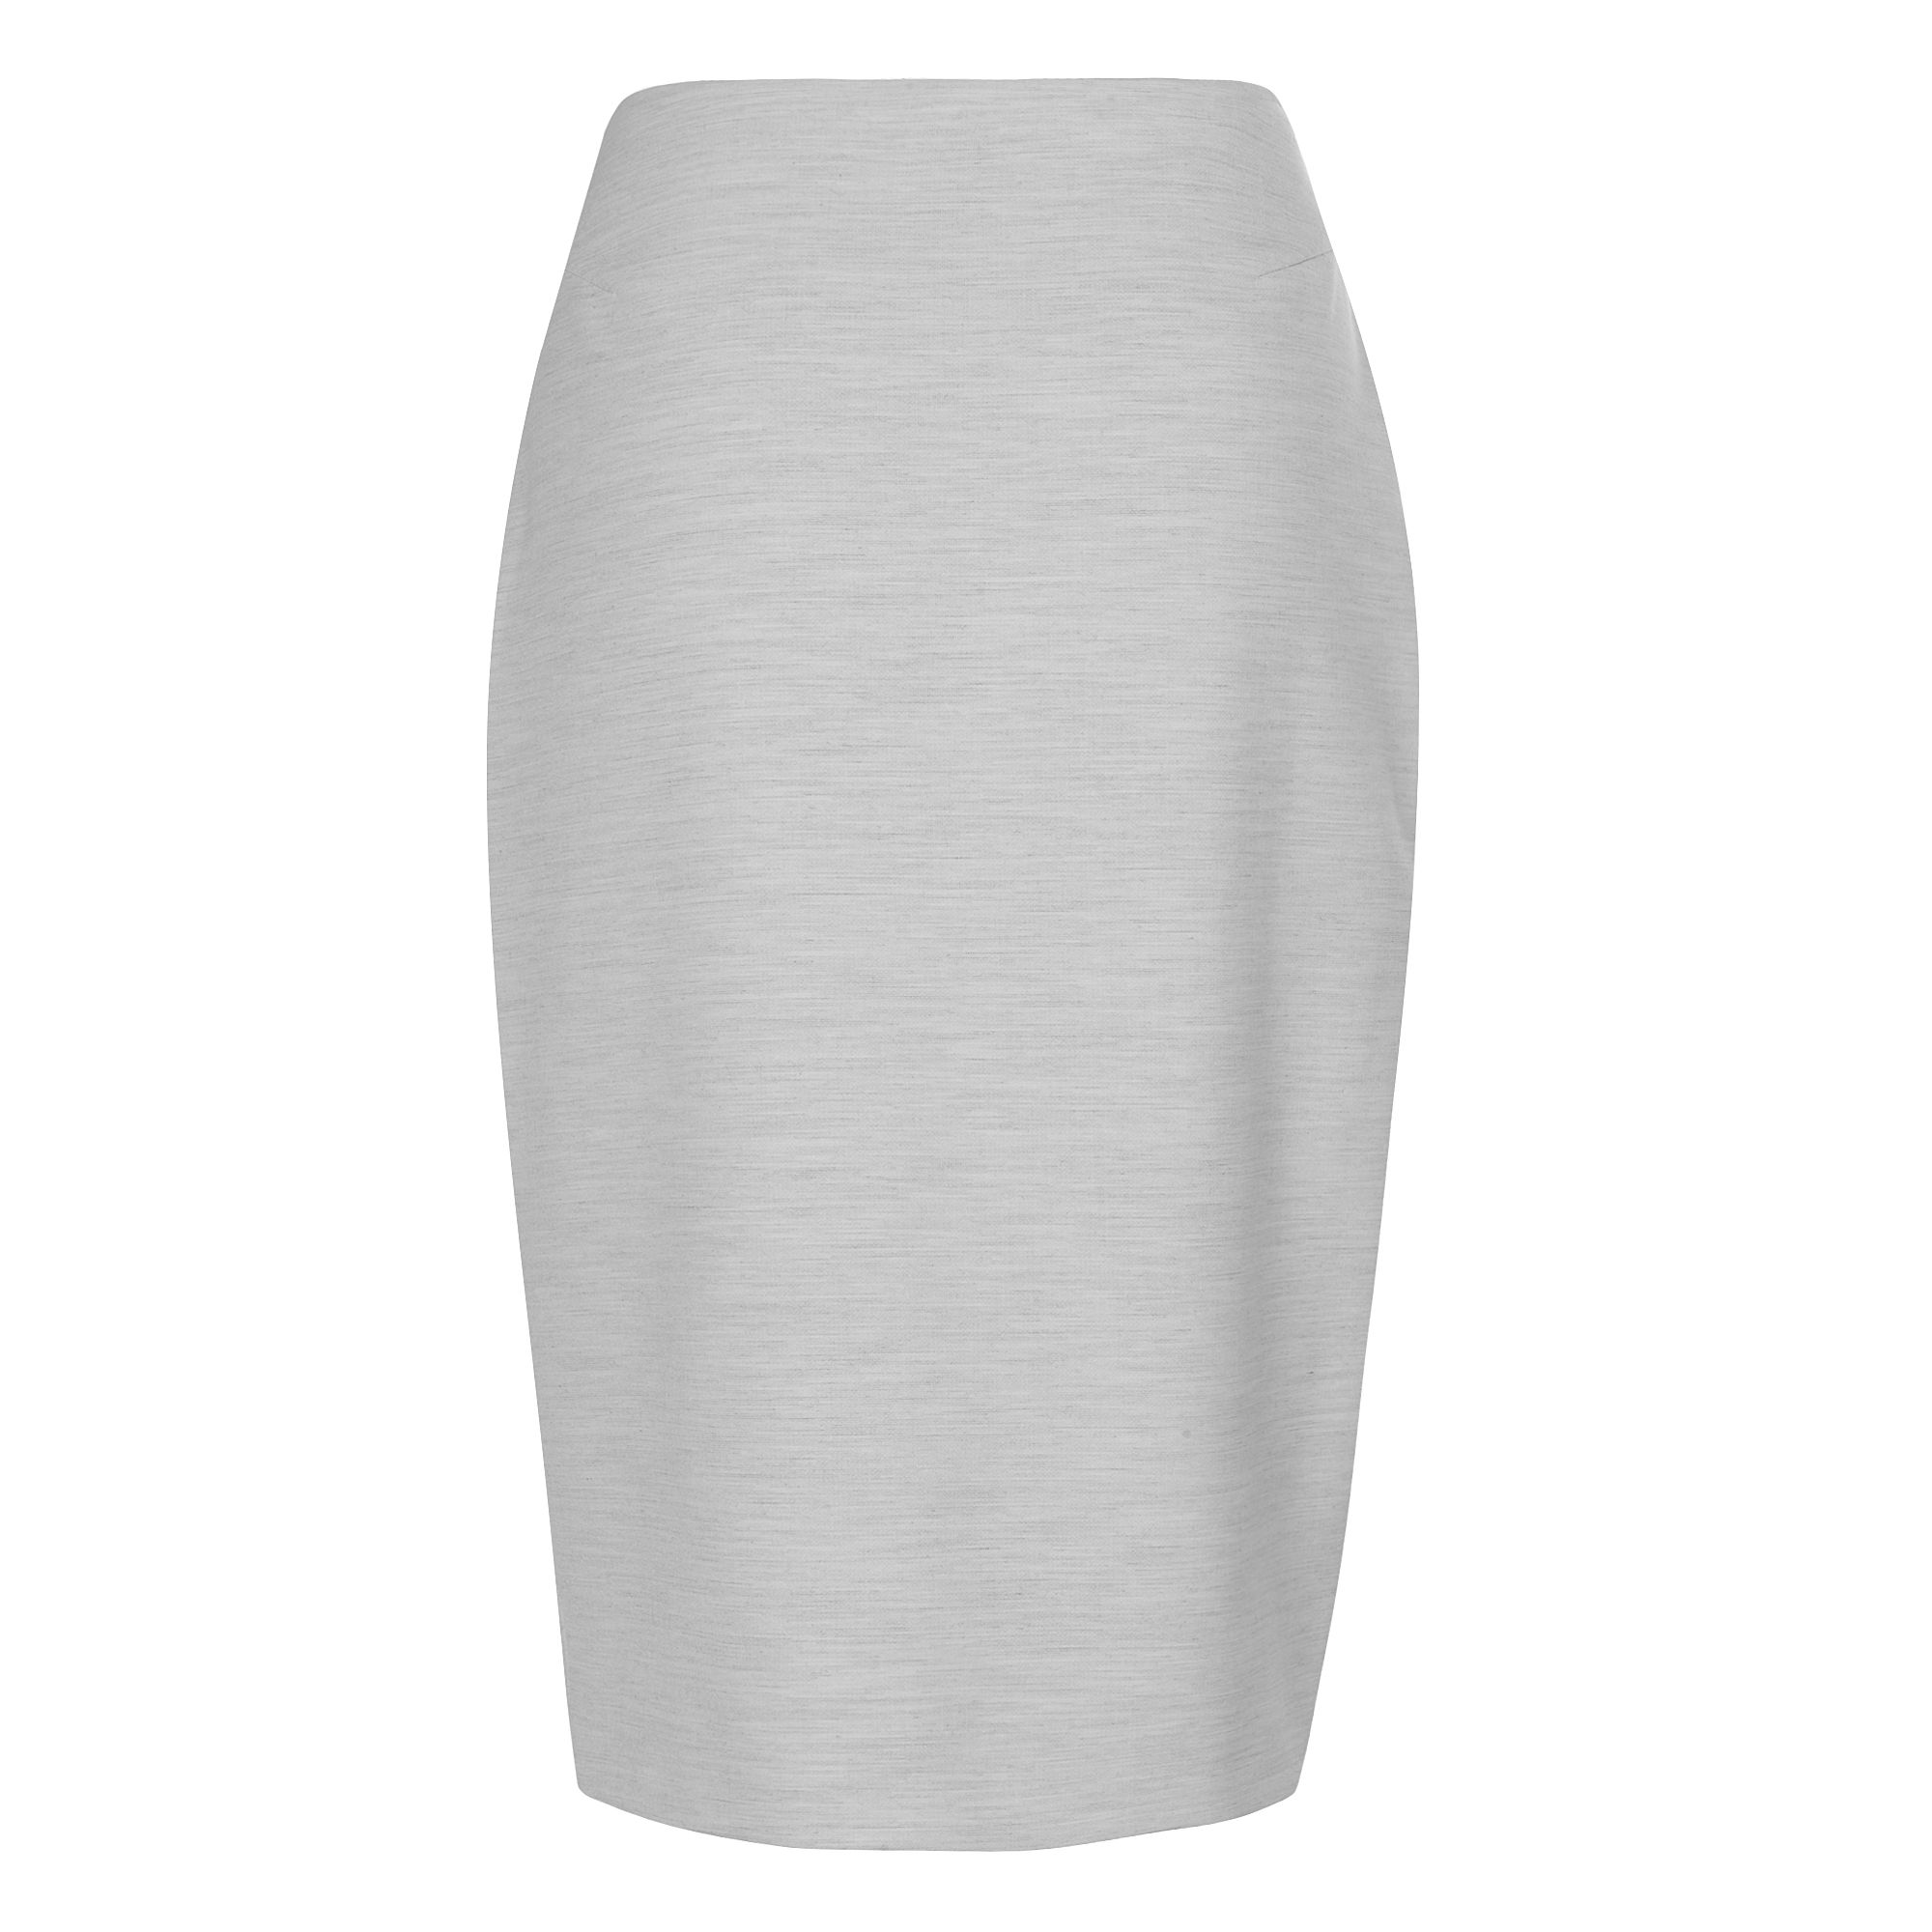 Handa fitted skirt